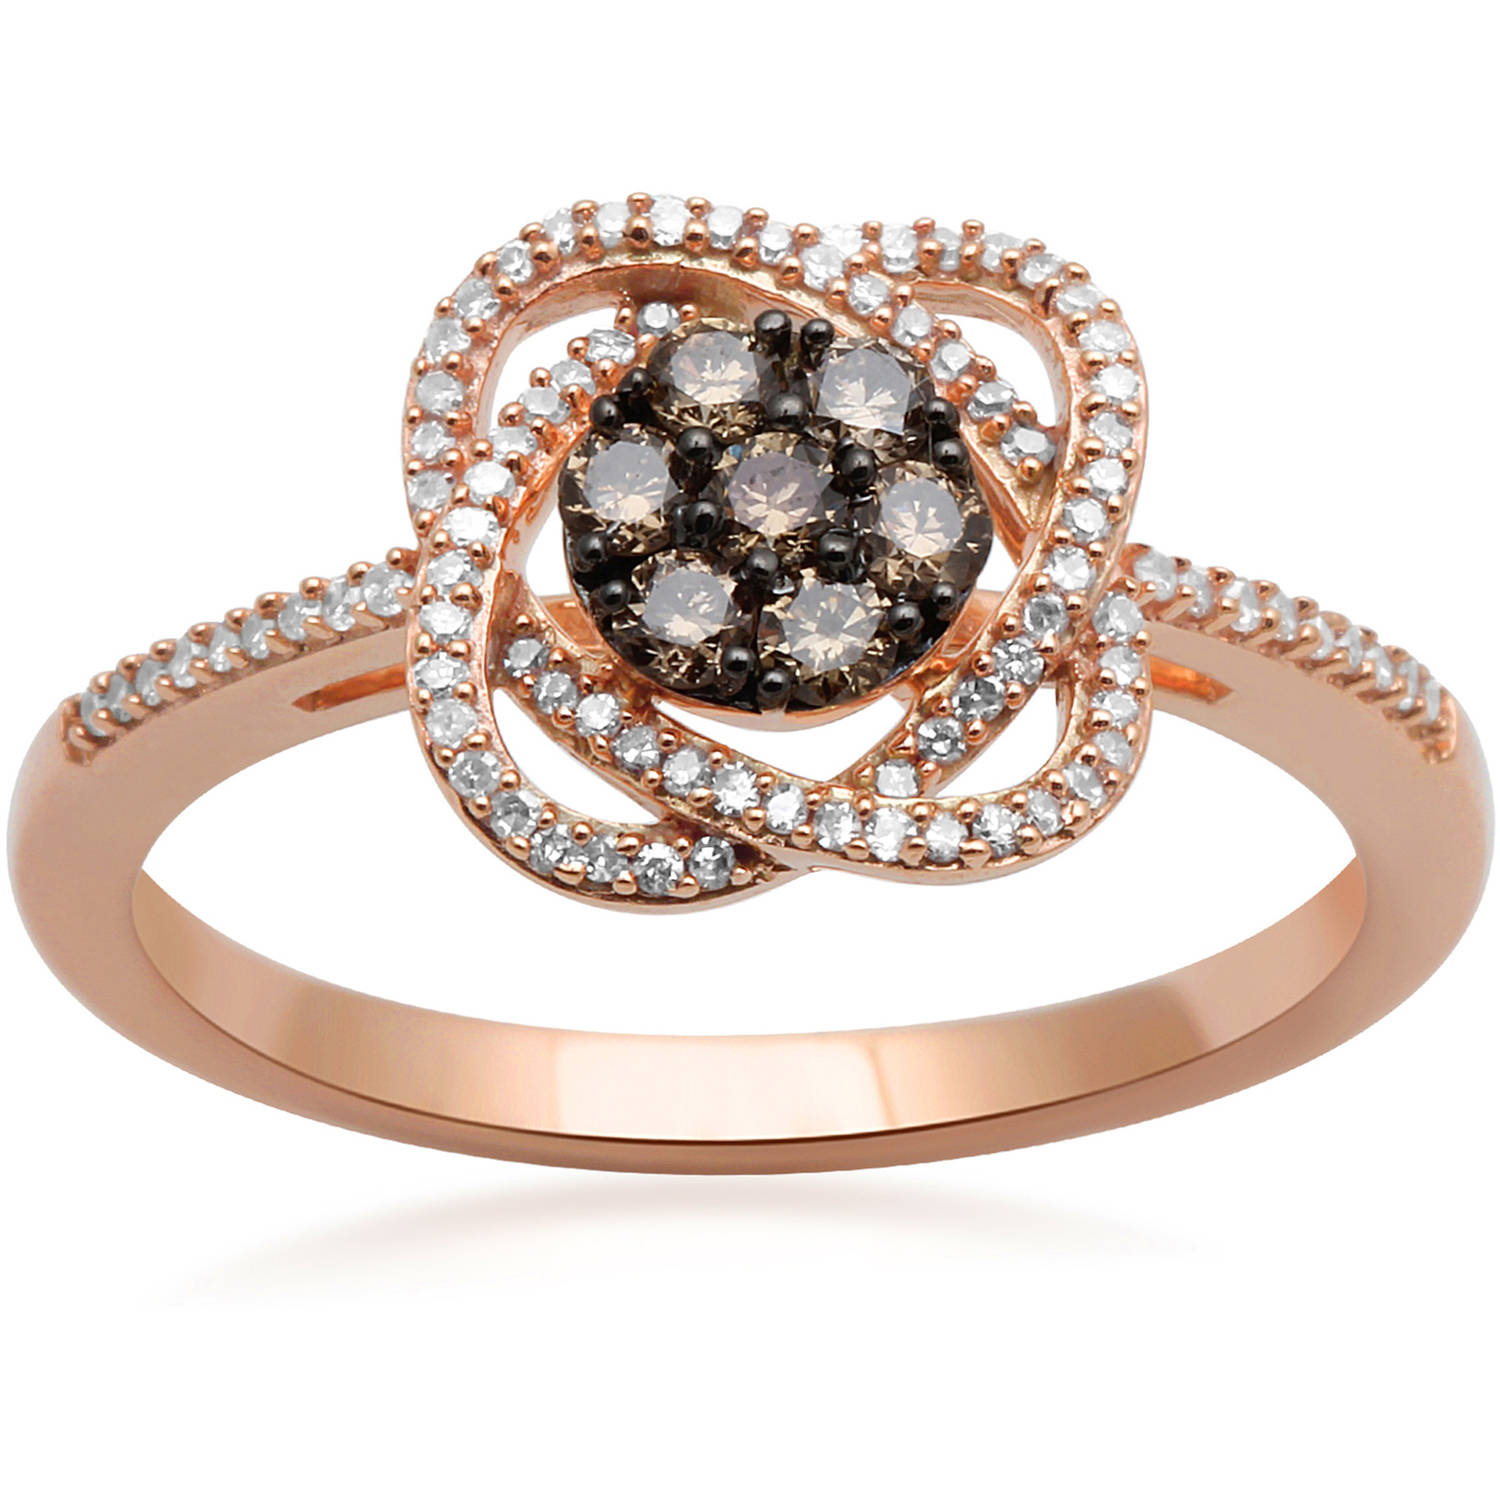 1/3 Carat T.W. Diamond 10kt Pink Gold Fashion Ring